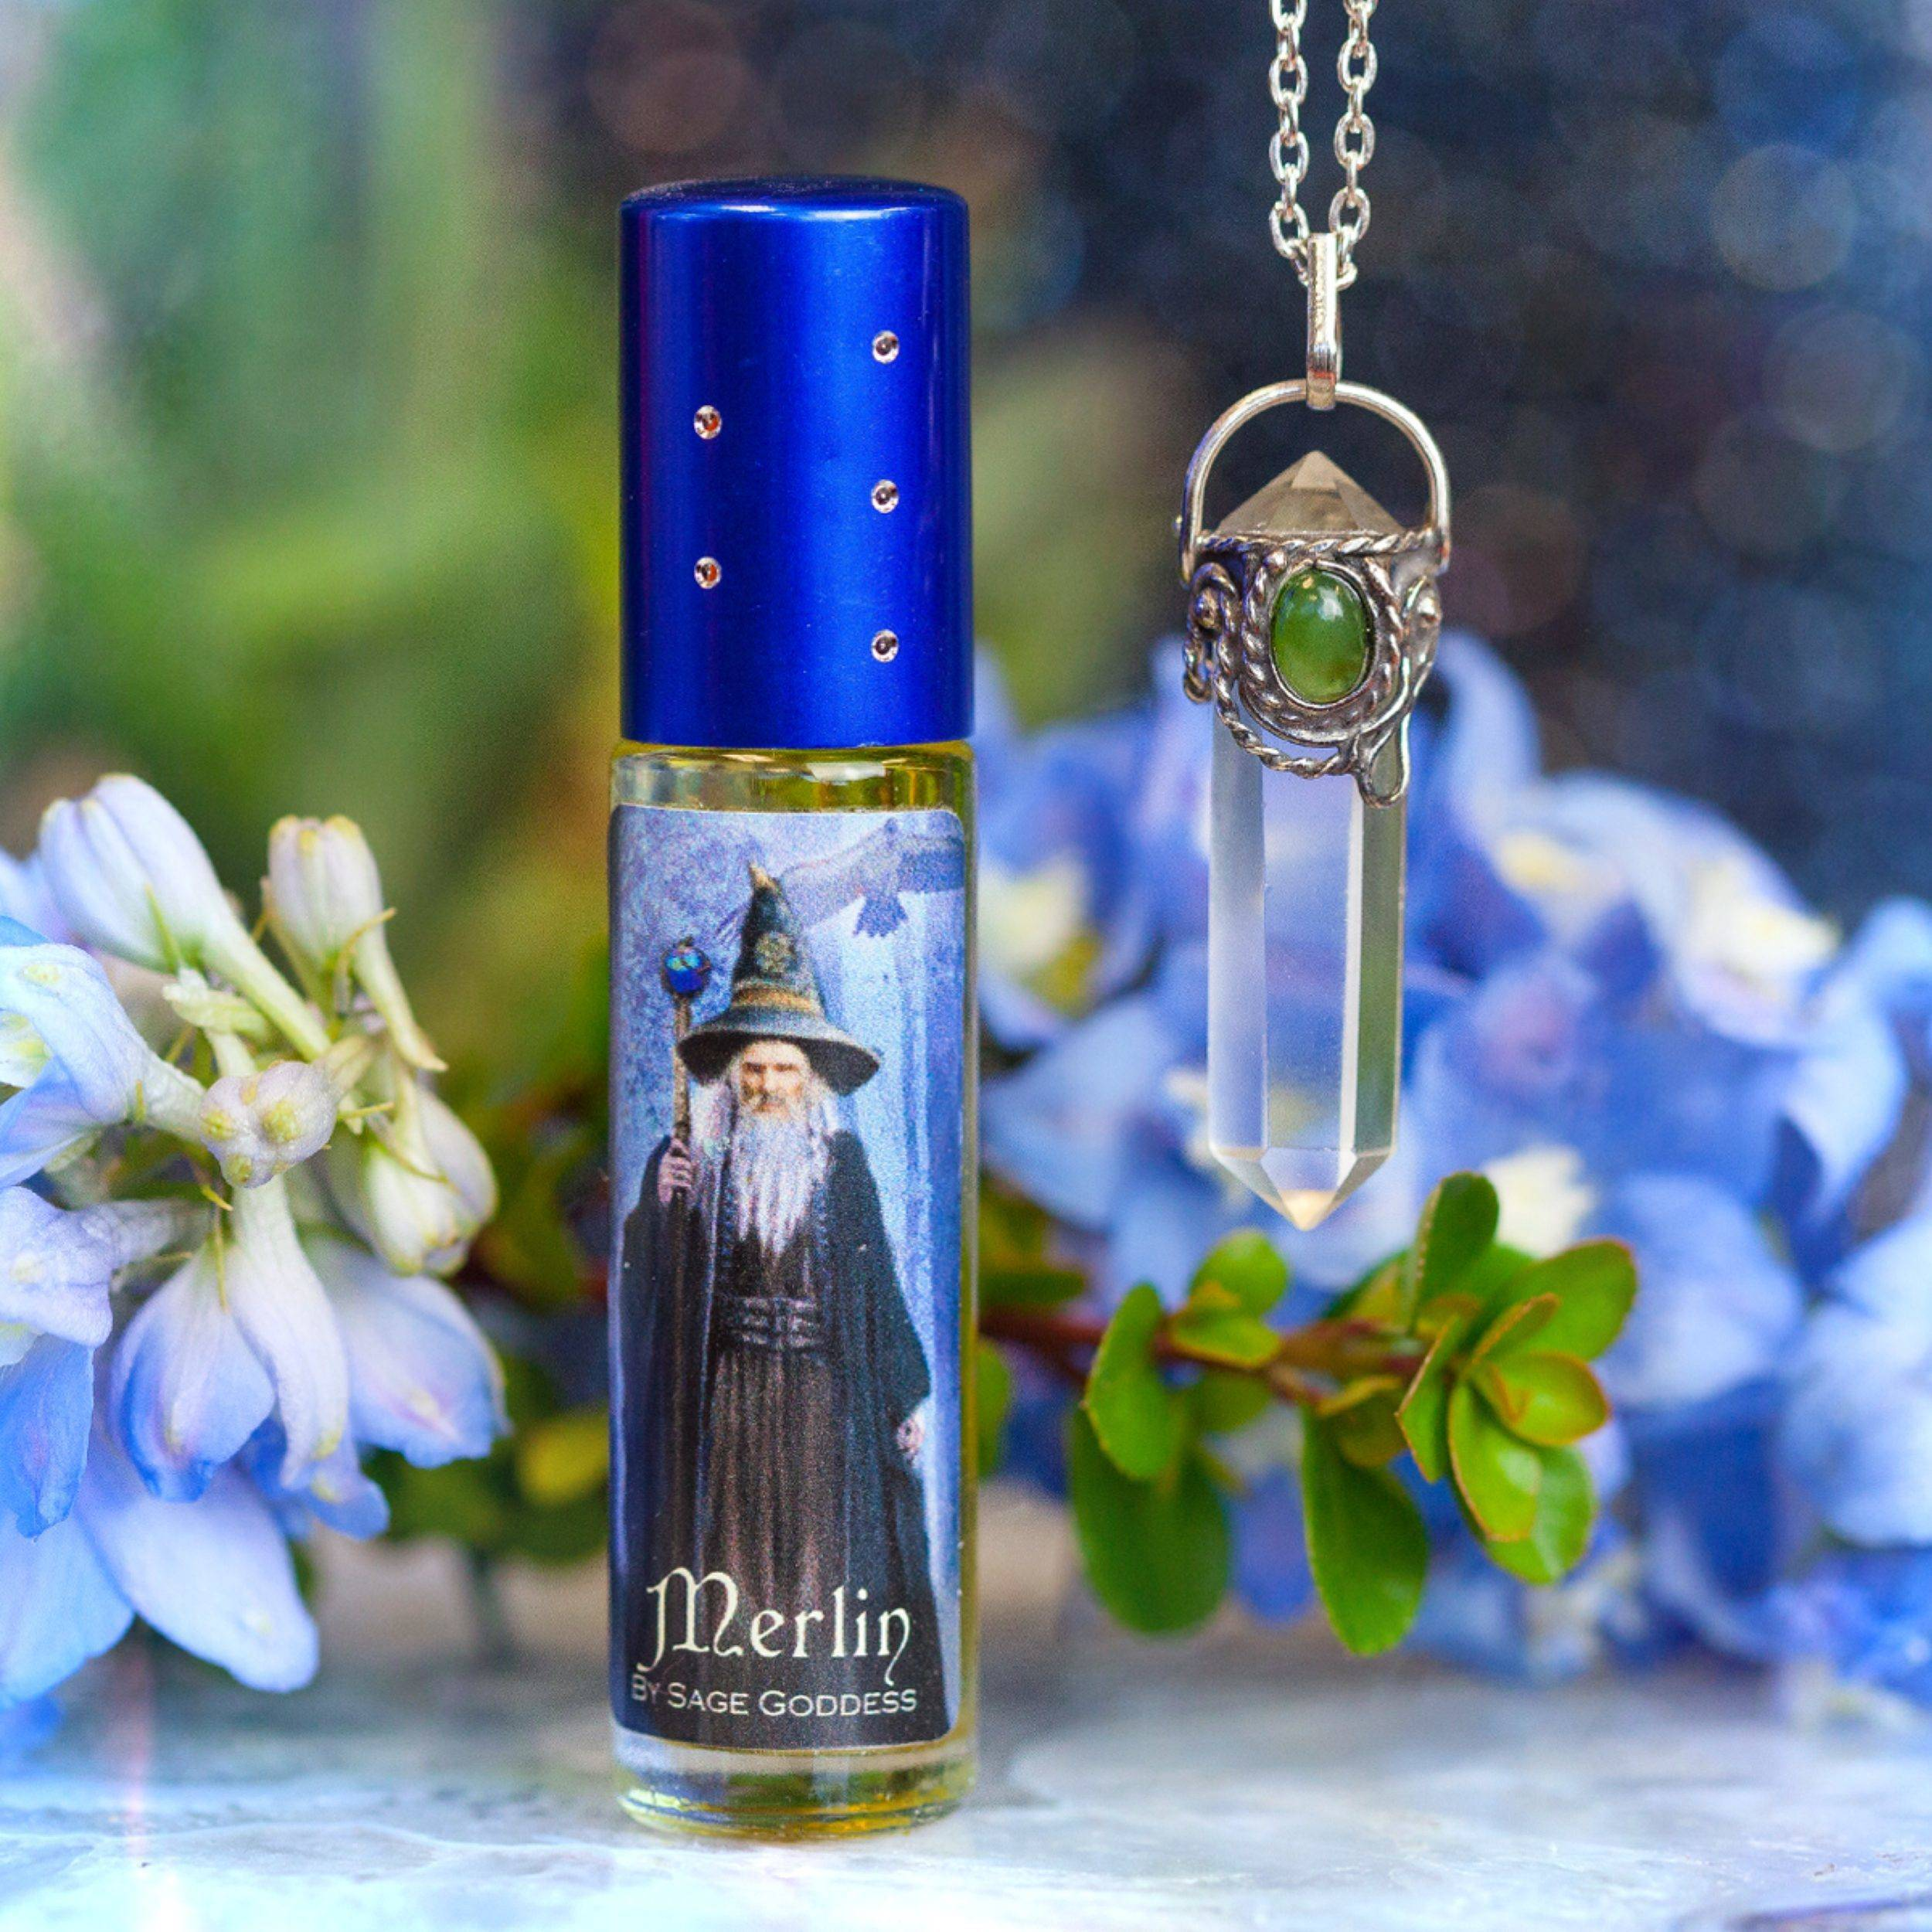 Merlin_Perfume_with_Free_Wizard_Pendant_1of3_10_5